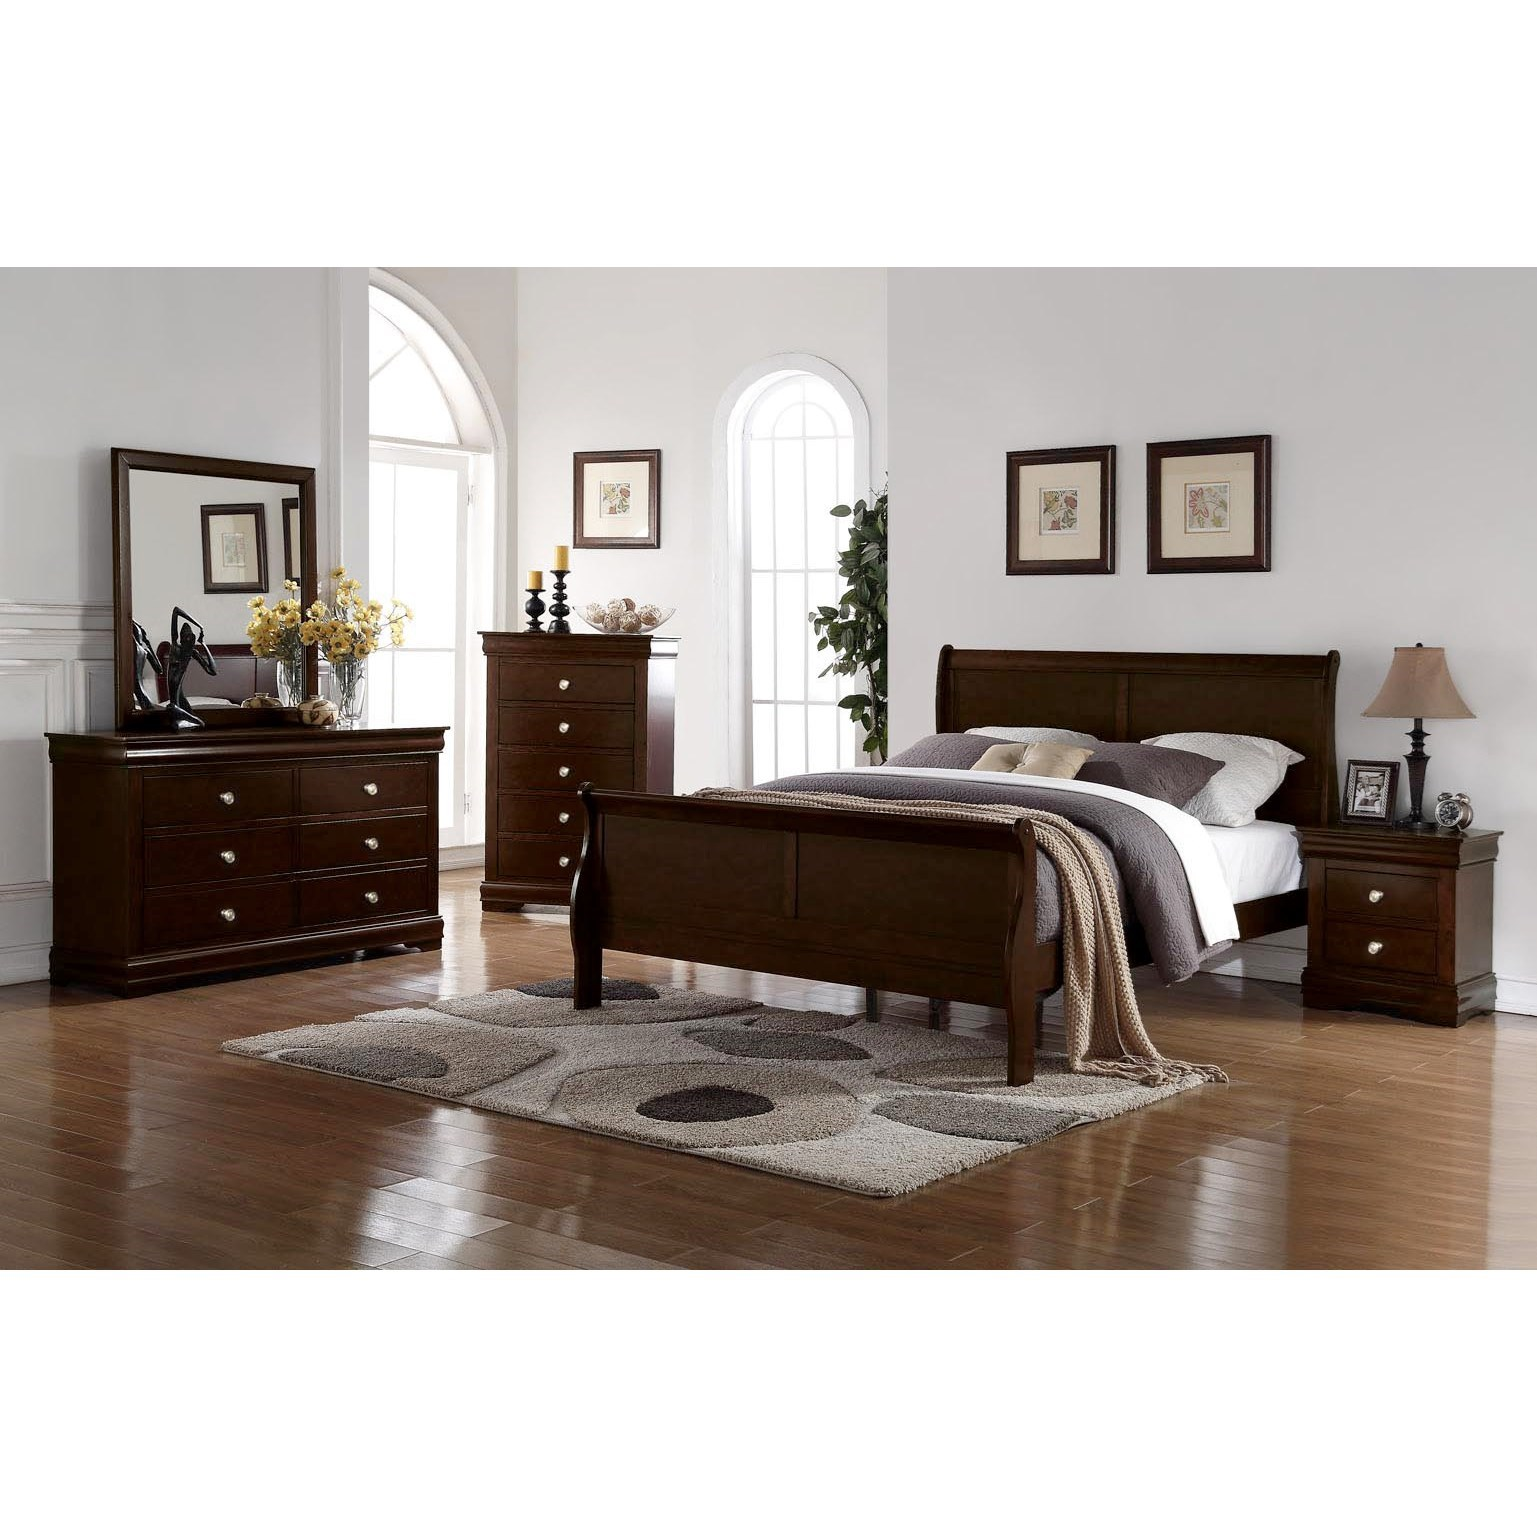 Orleans Queen Bedroom Group by Steve Silver at Northeast Factory Direct